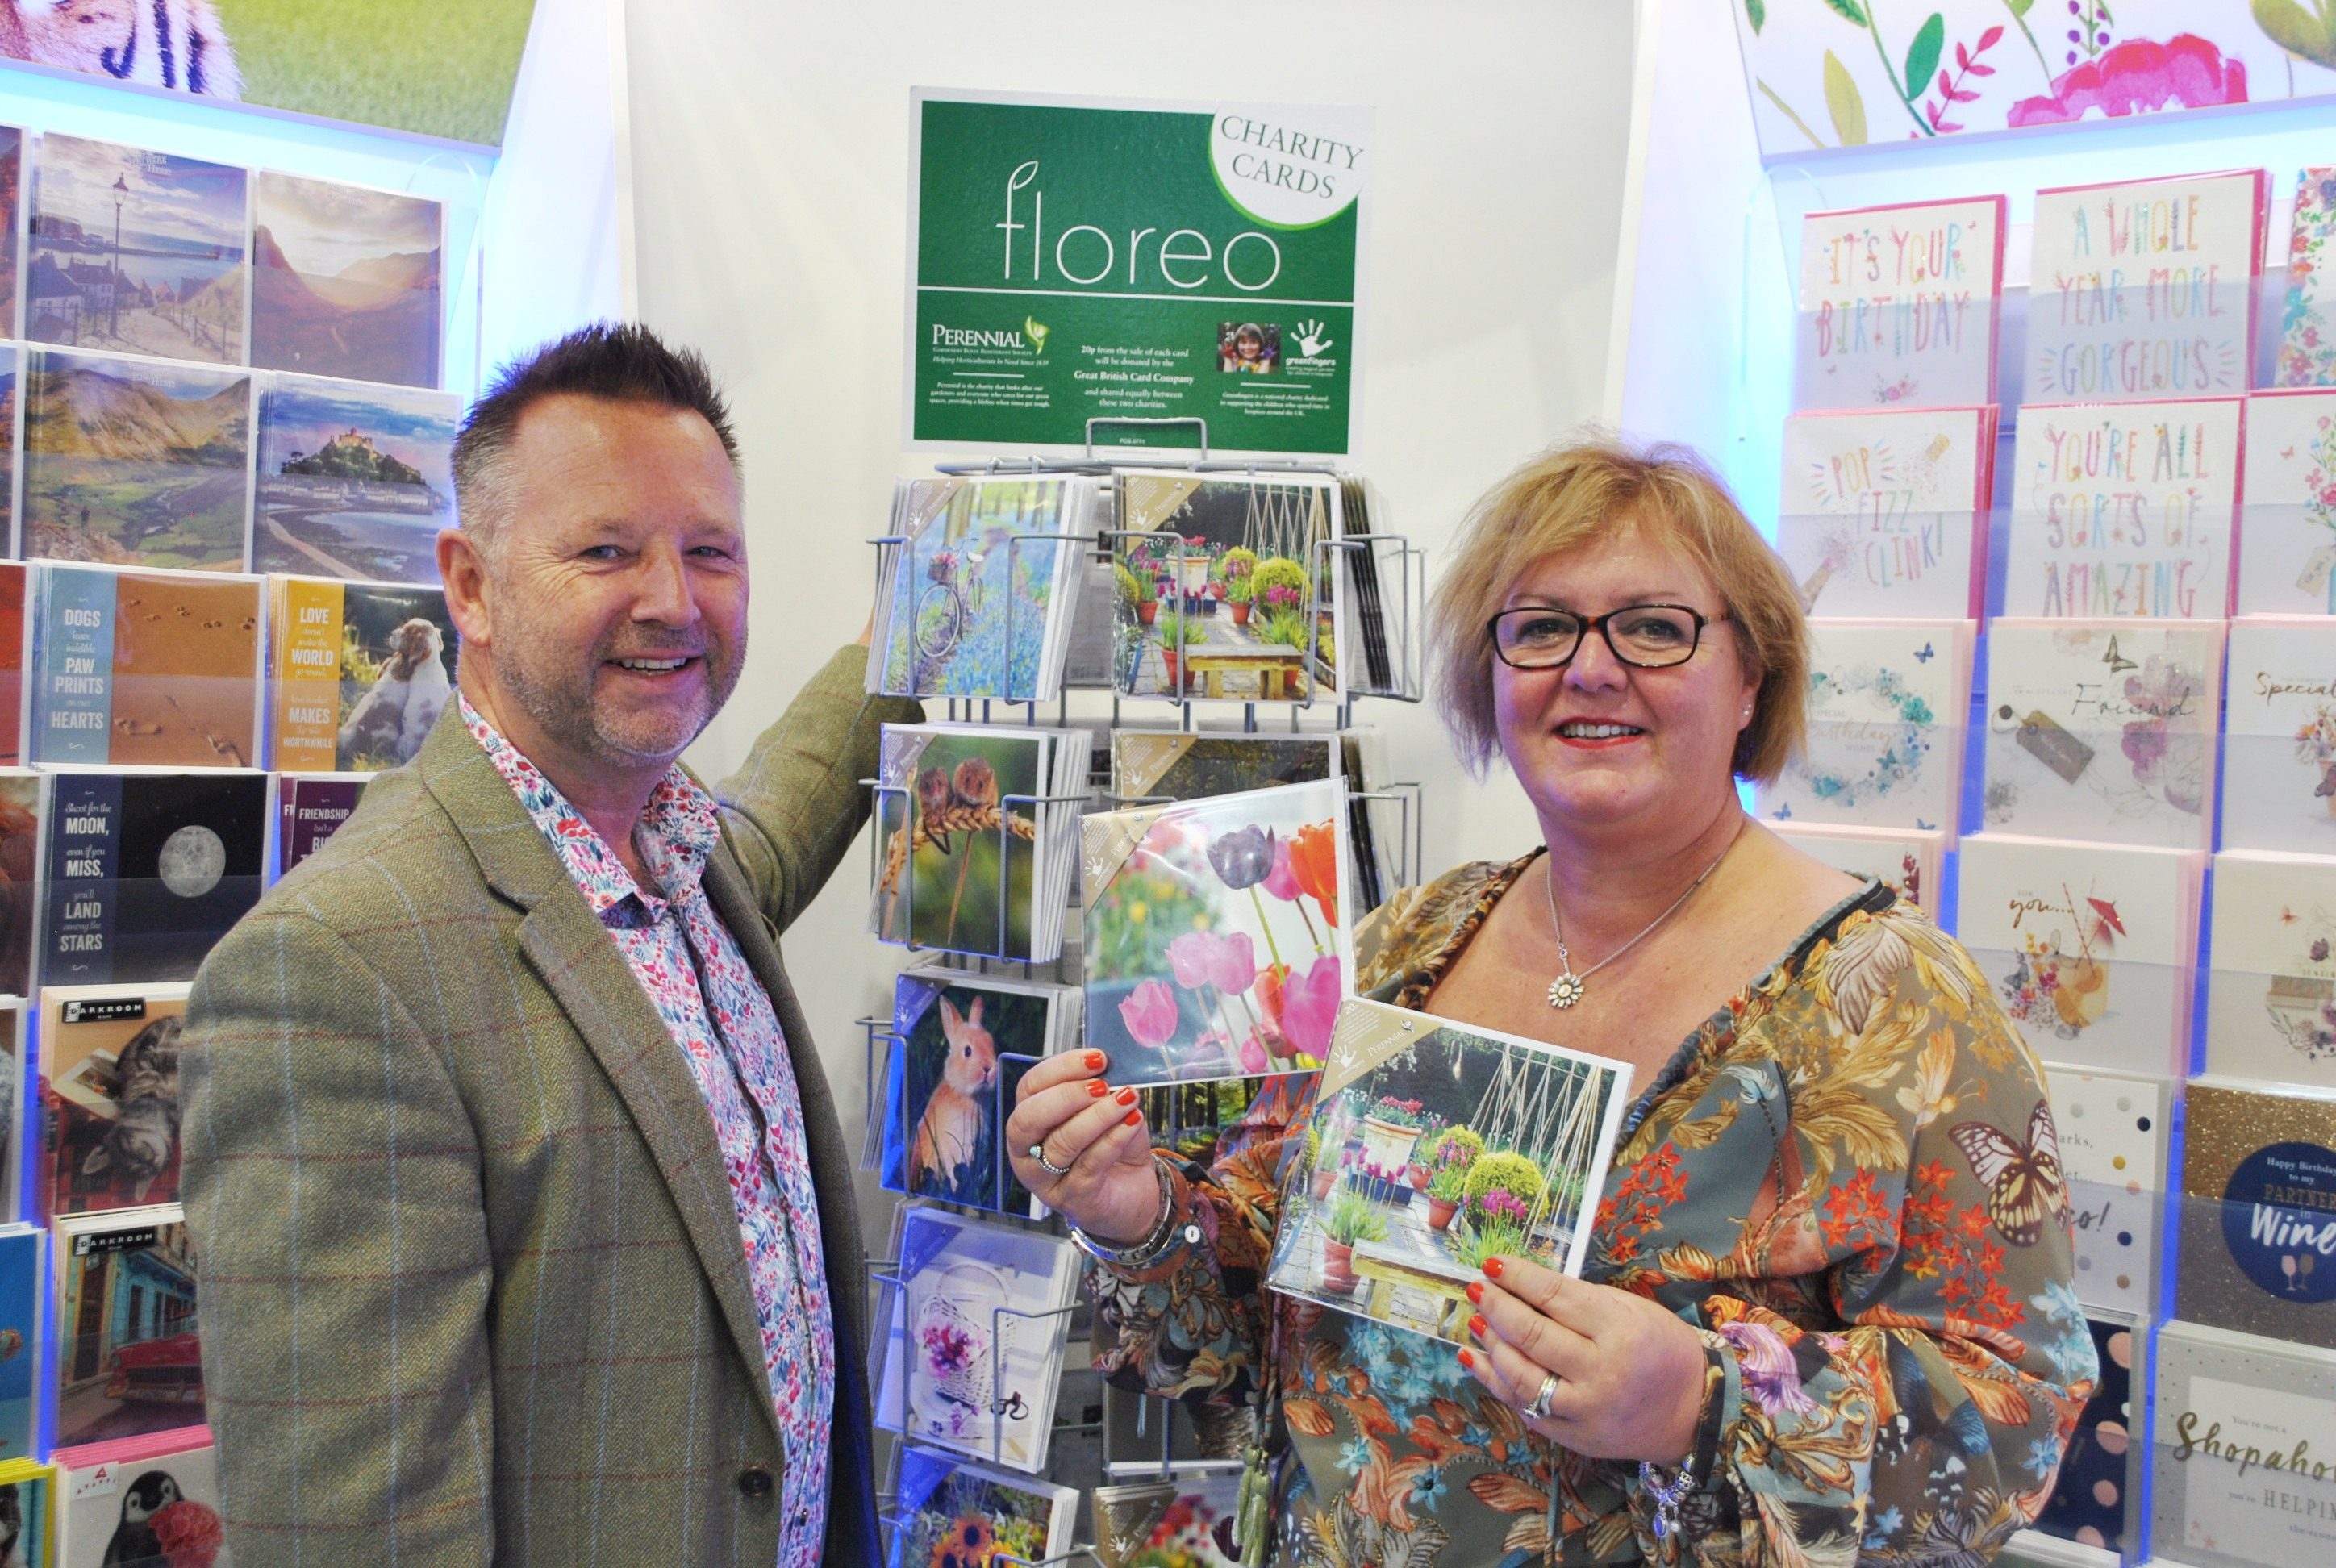 Above: Nick Adsett, GBCC's product director with Linda Petrons of Greenfingers Charity with the Floreo range.